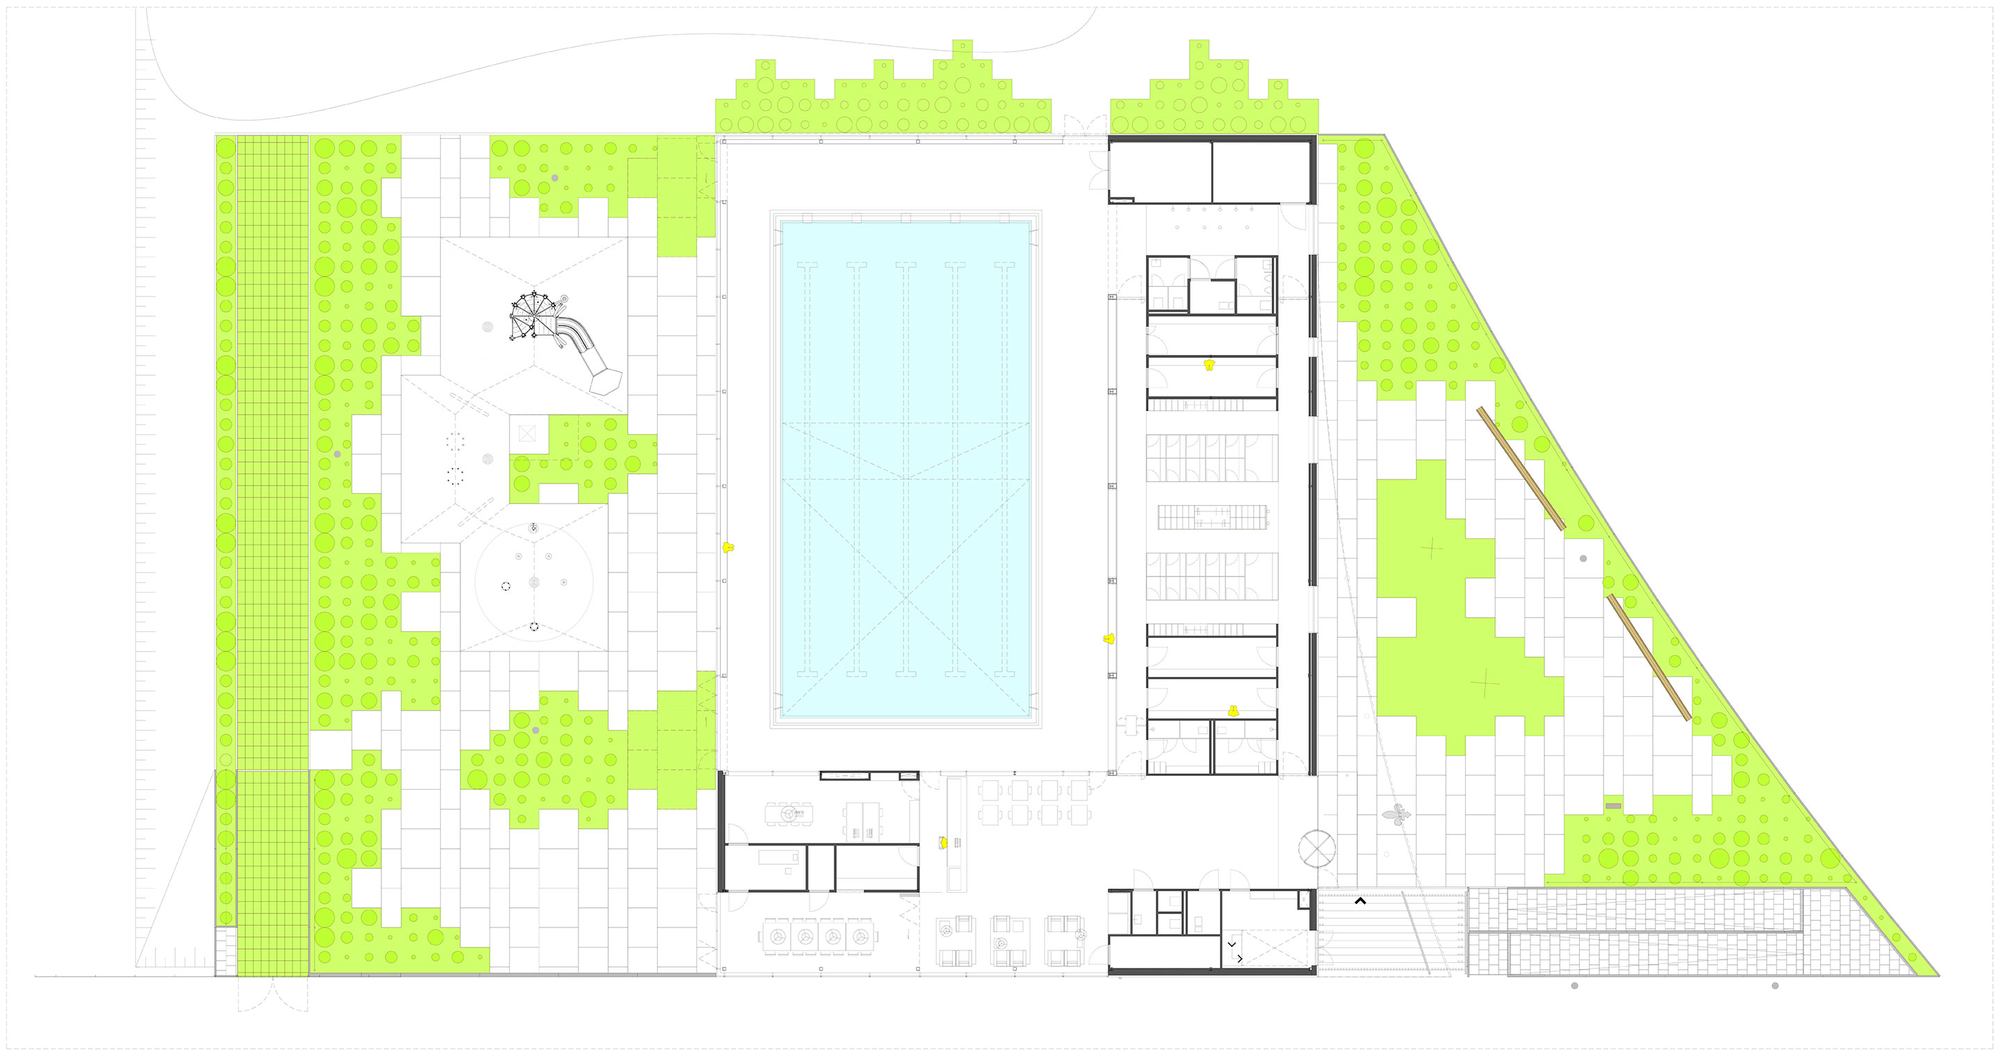 557b7a73e58eced6280002a0 De Heuvelrand Voorthuizen Swimming Pool Slangen Koenis Architecten 15 Plan Png Indoor Swimming Pools Swimming Pools Swimming Pool Spa